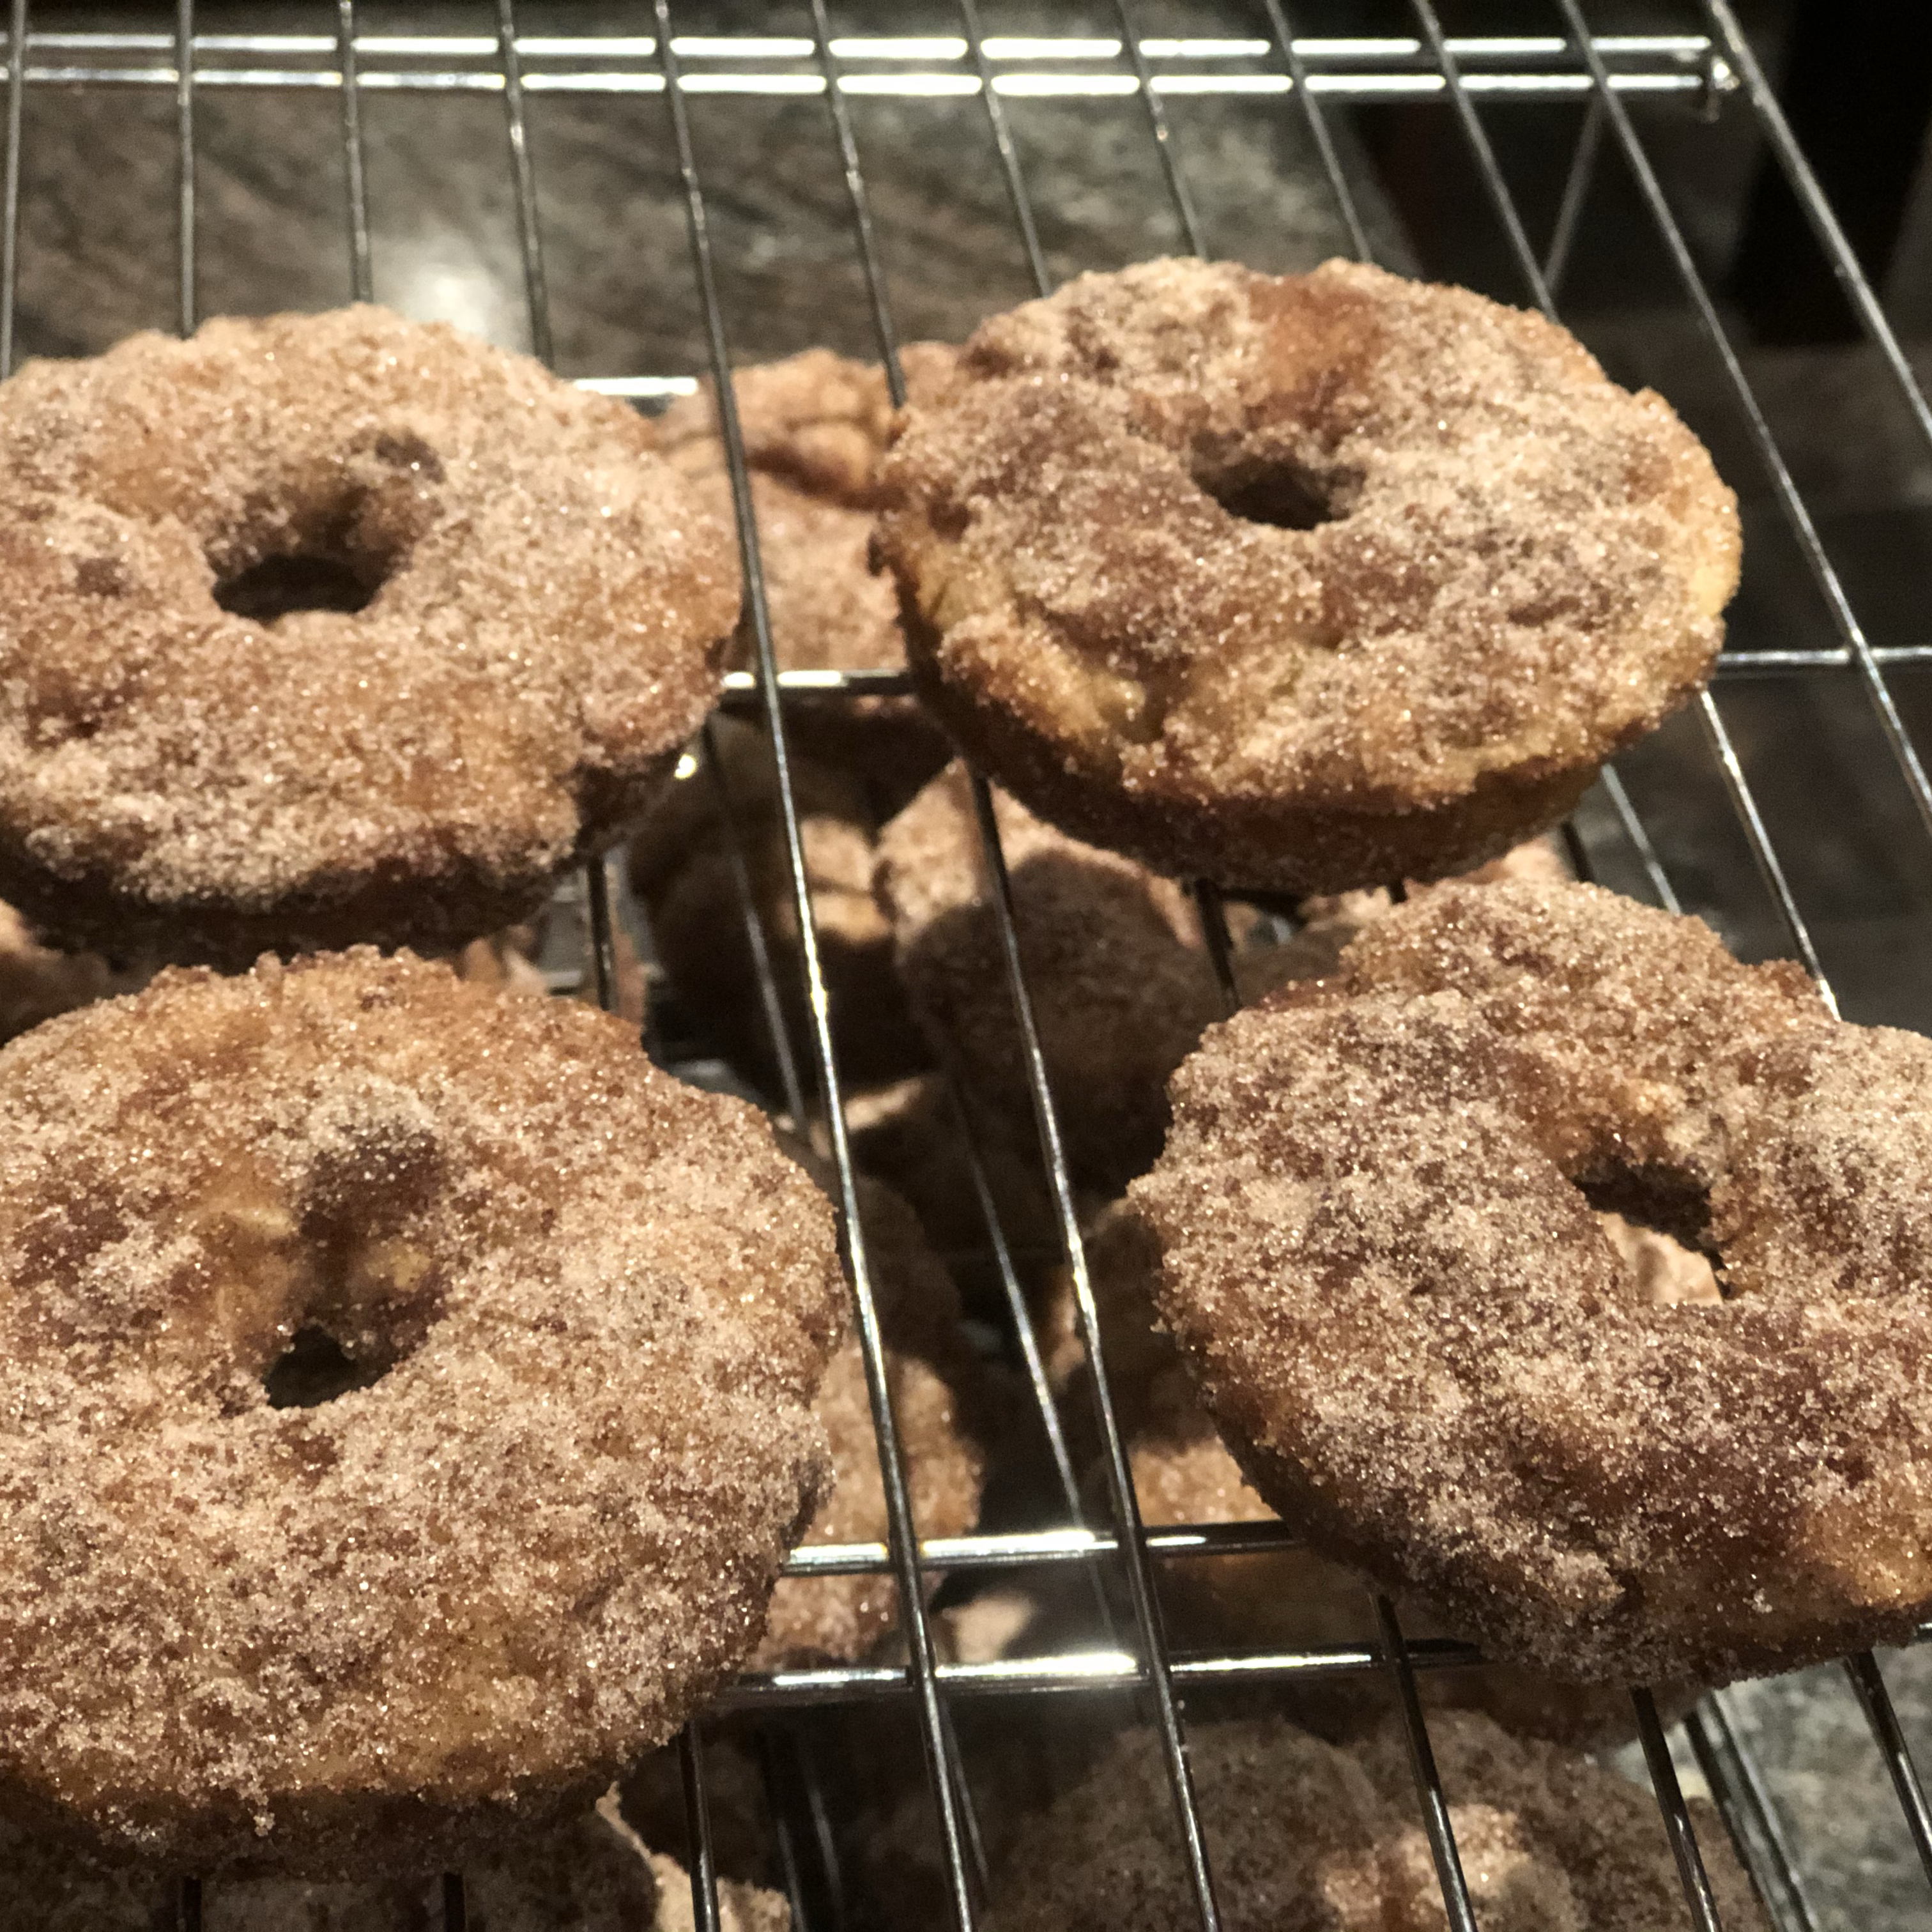 """These easy and delicious baked apple doughnuts are tender, sweet, and studded with pieces of tart apple,"" says summer. ""The trick is to coat the dough in lots of cinnamon sugar, and then bake them so they are still soft on the inside and have a wonderful sugar crust on the outside. Enjoy with coffee and a crossword!"""